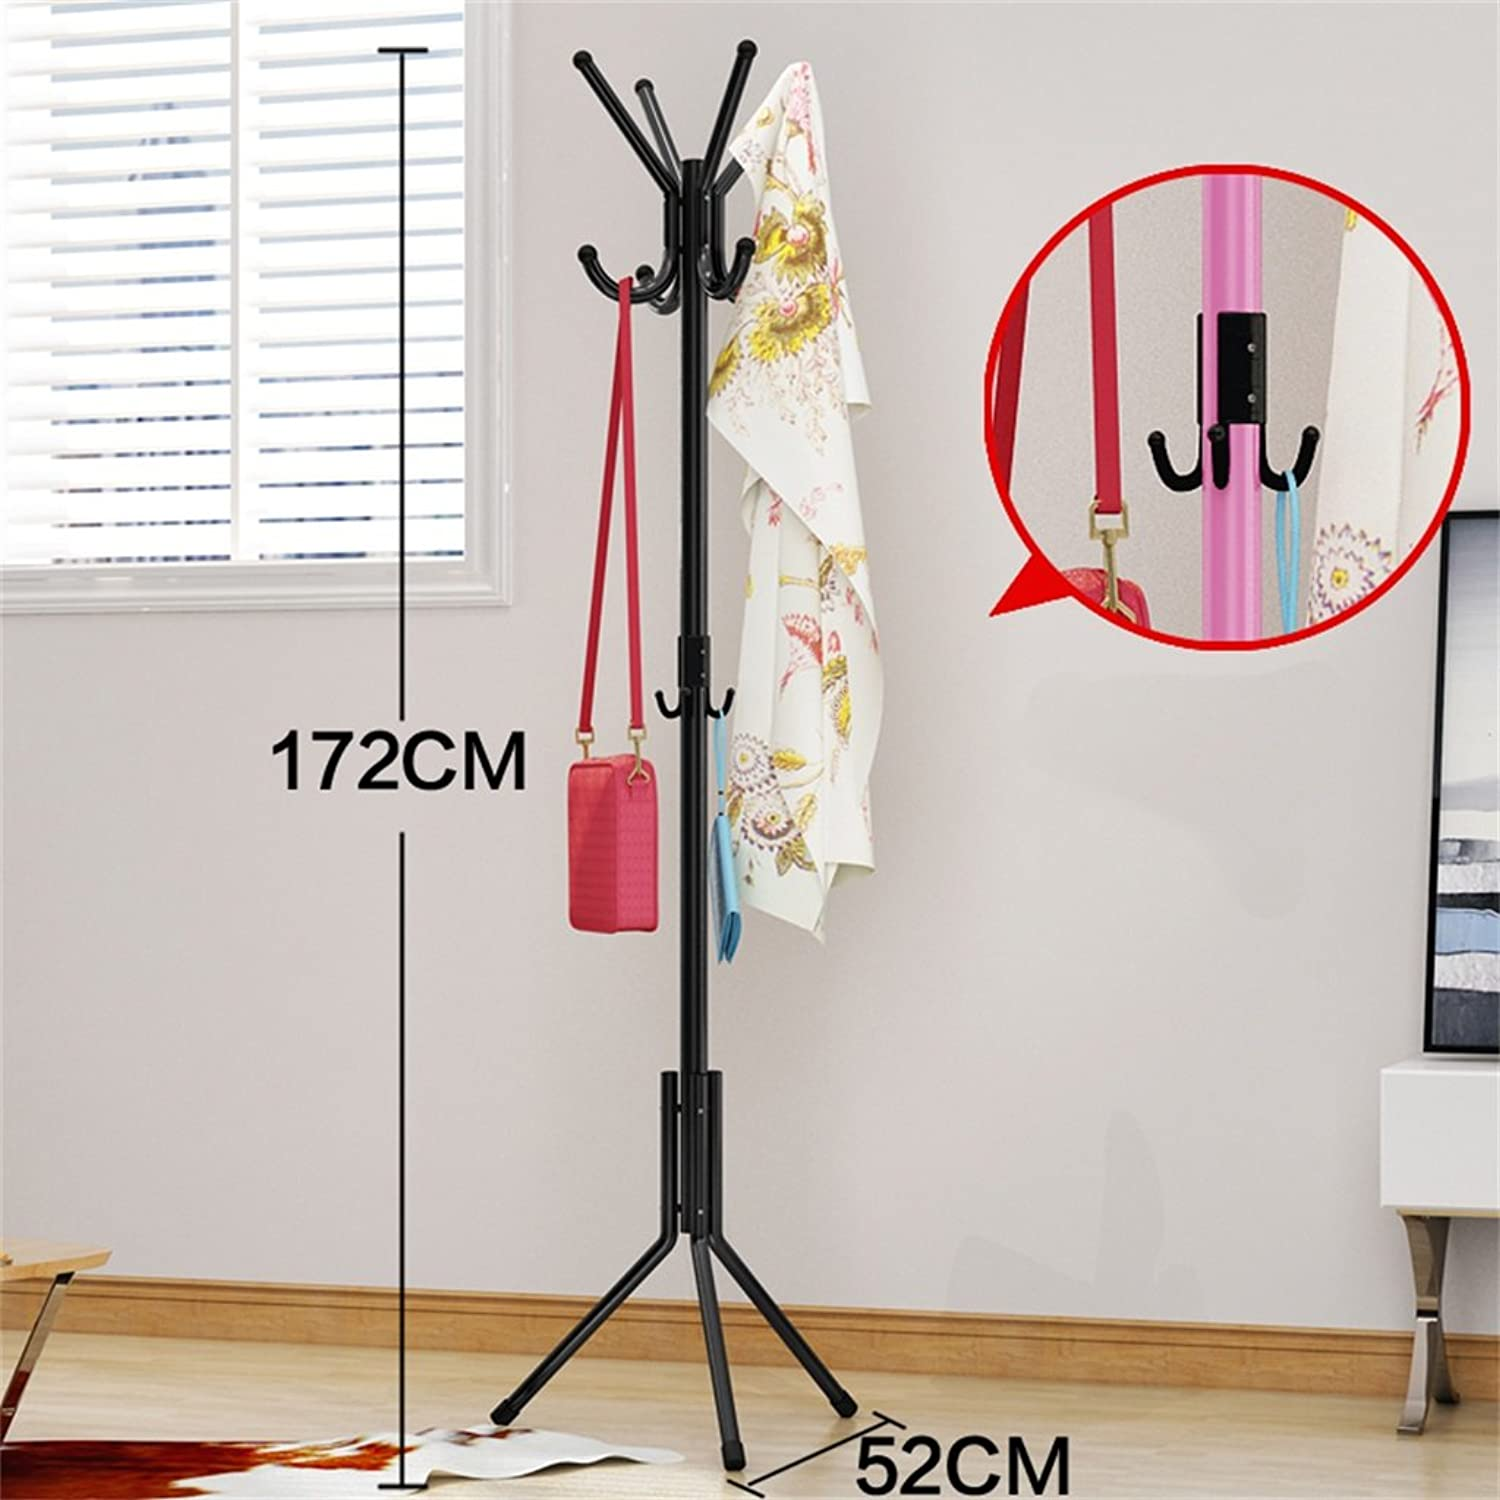 AIDELAI Coat Rack Coat Racks Bedroom Hangers Floor Fashion Creative Clothes Shelves Iron Anti-Rust (color    11)